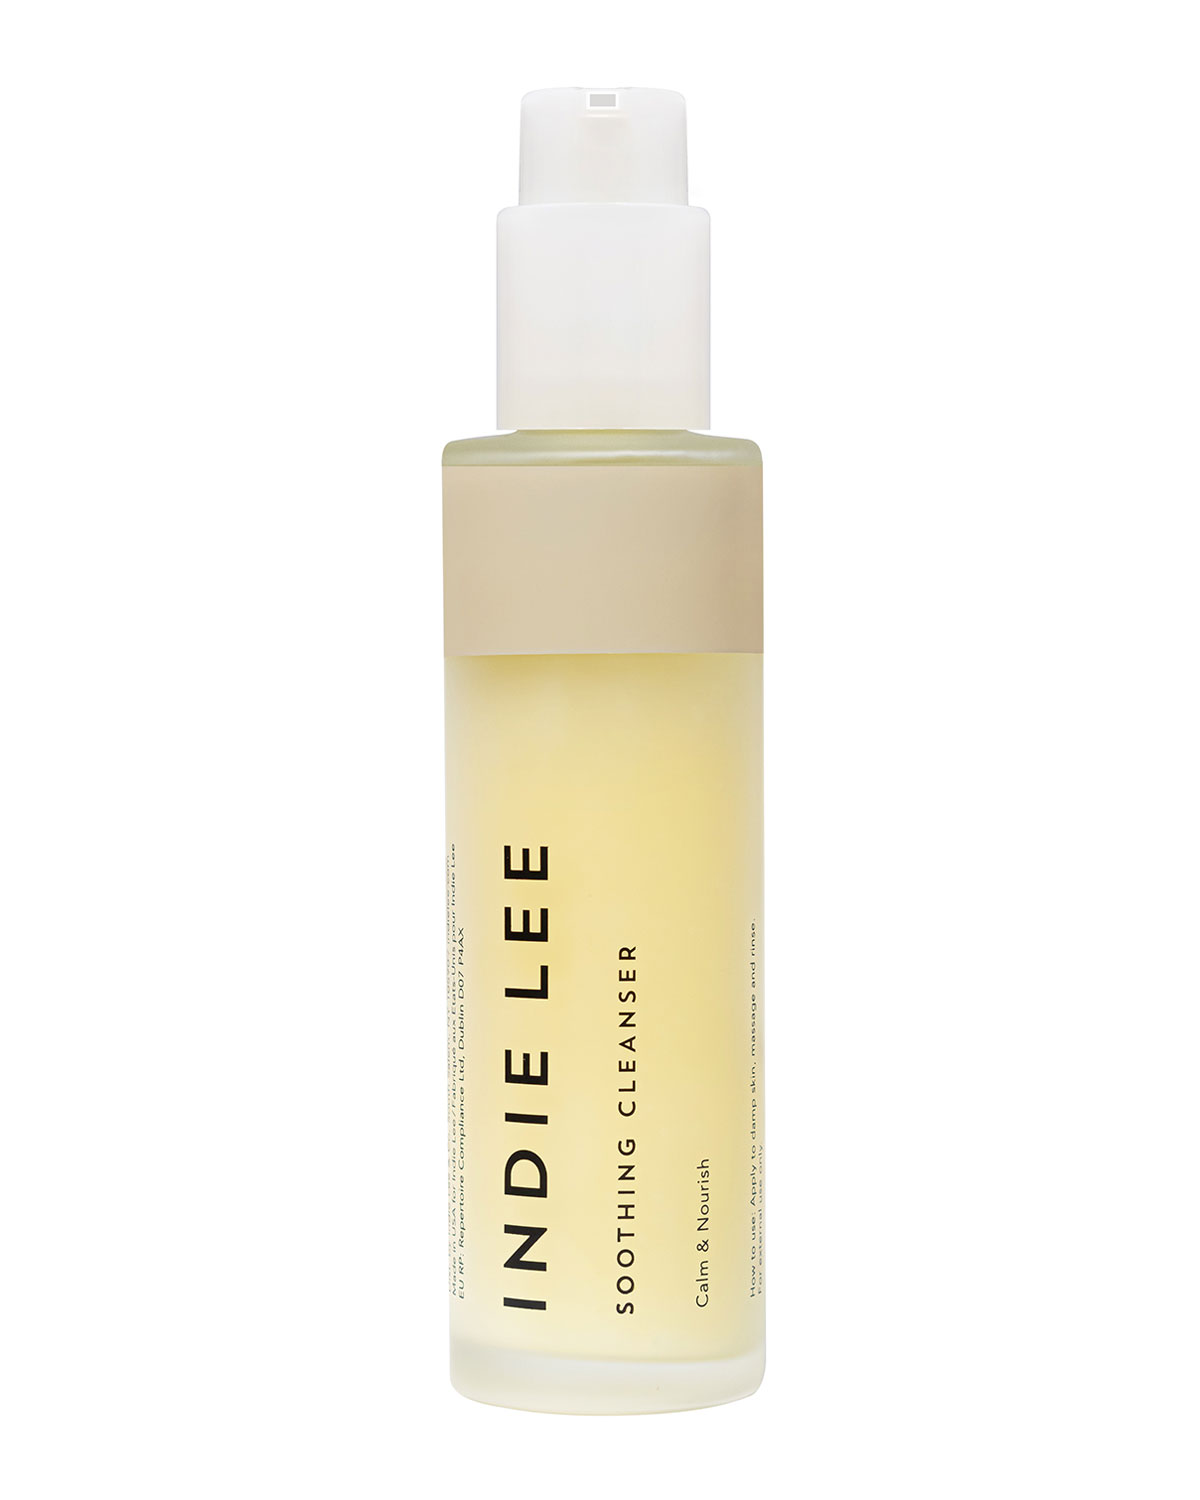 4.2 oz. Soothing Cleanser